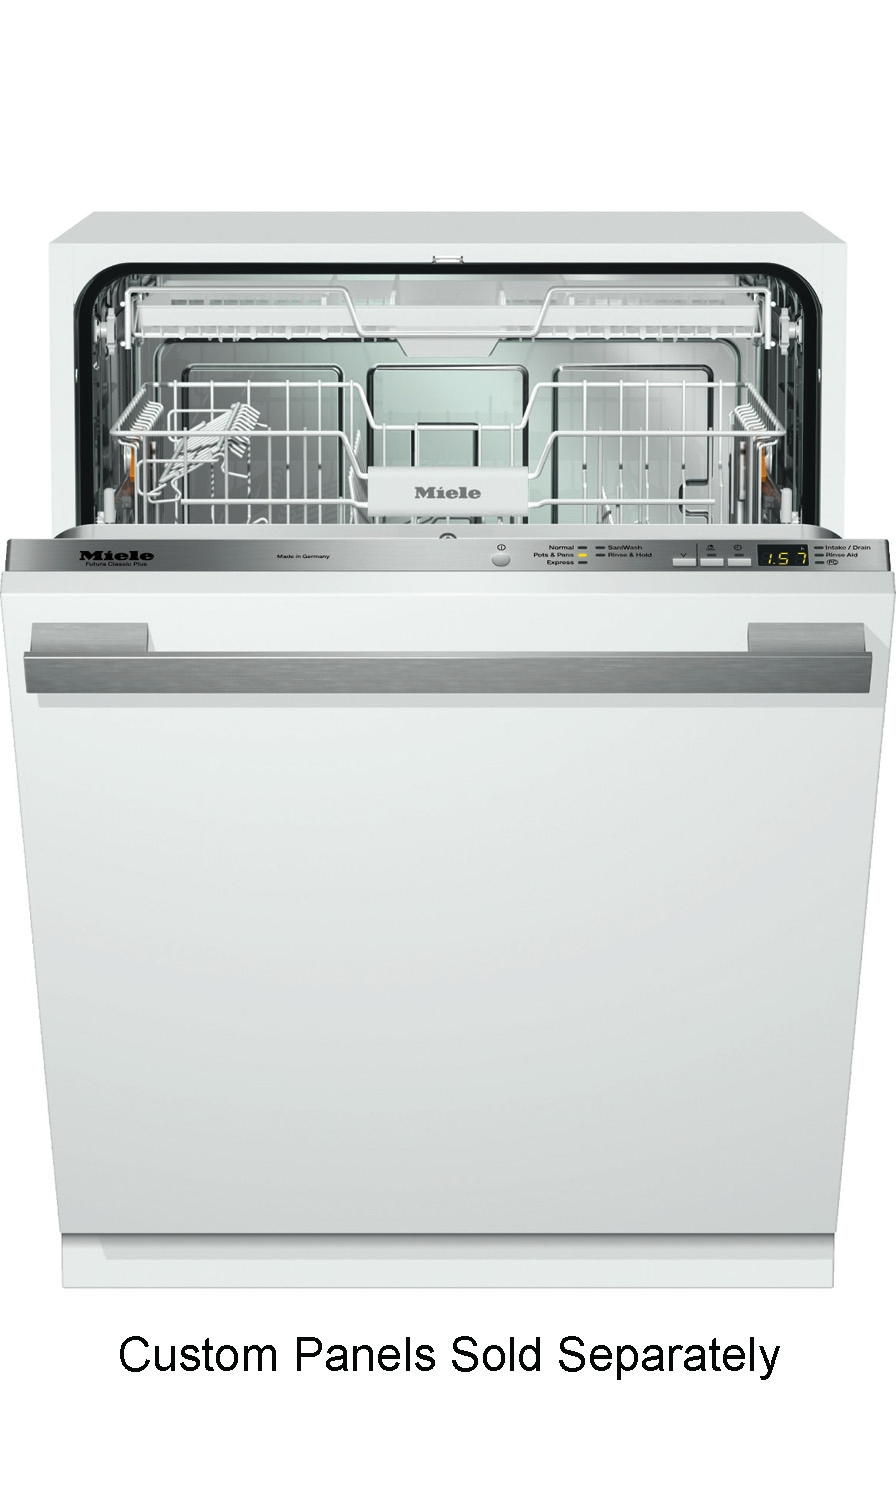 Miele Panel Ready Integrated Dishwasher G4970scvi